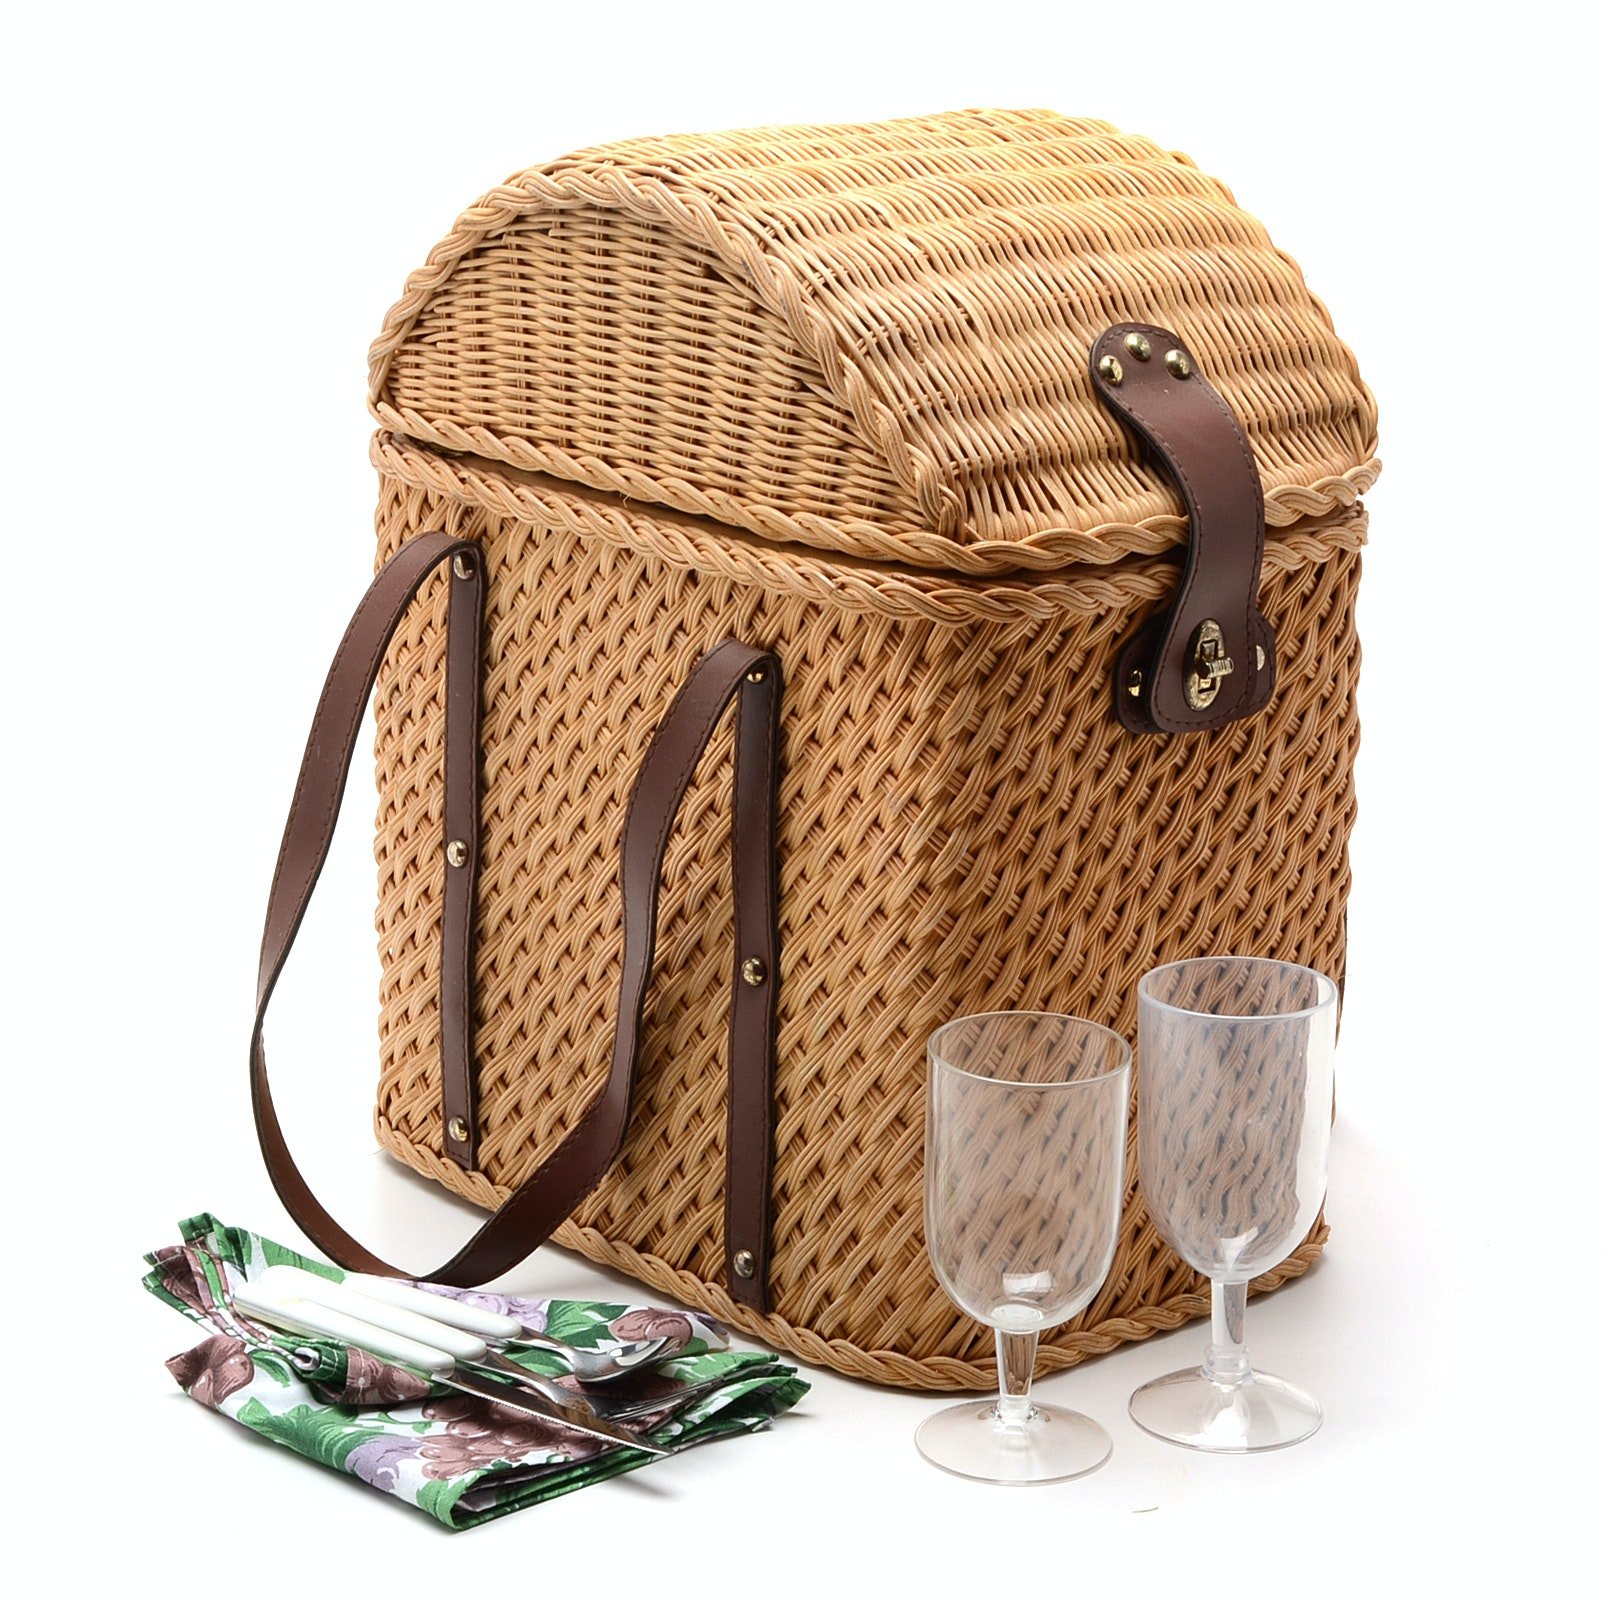 Fitted Wicker Picnic Basket